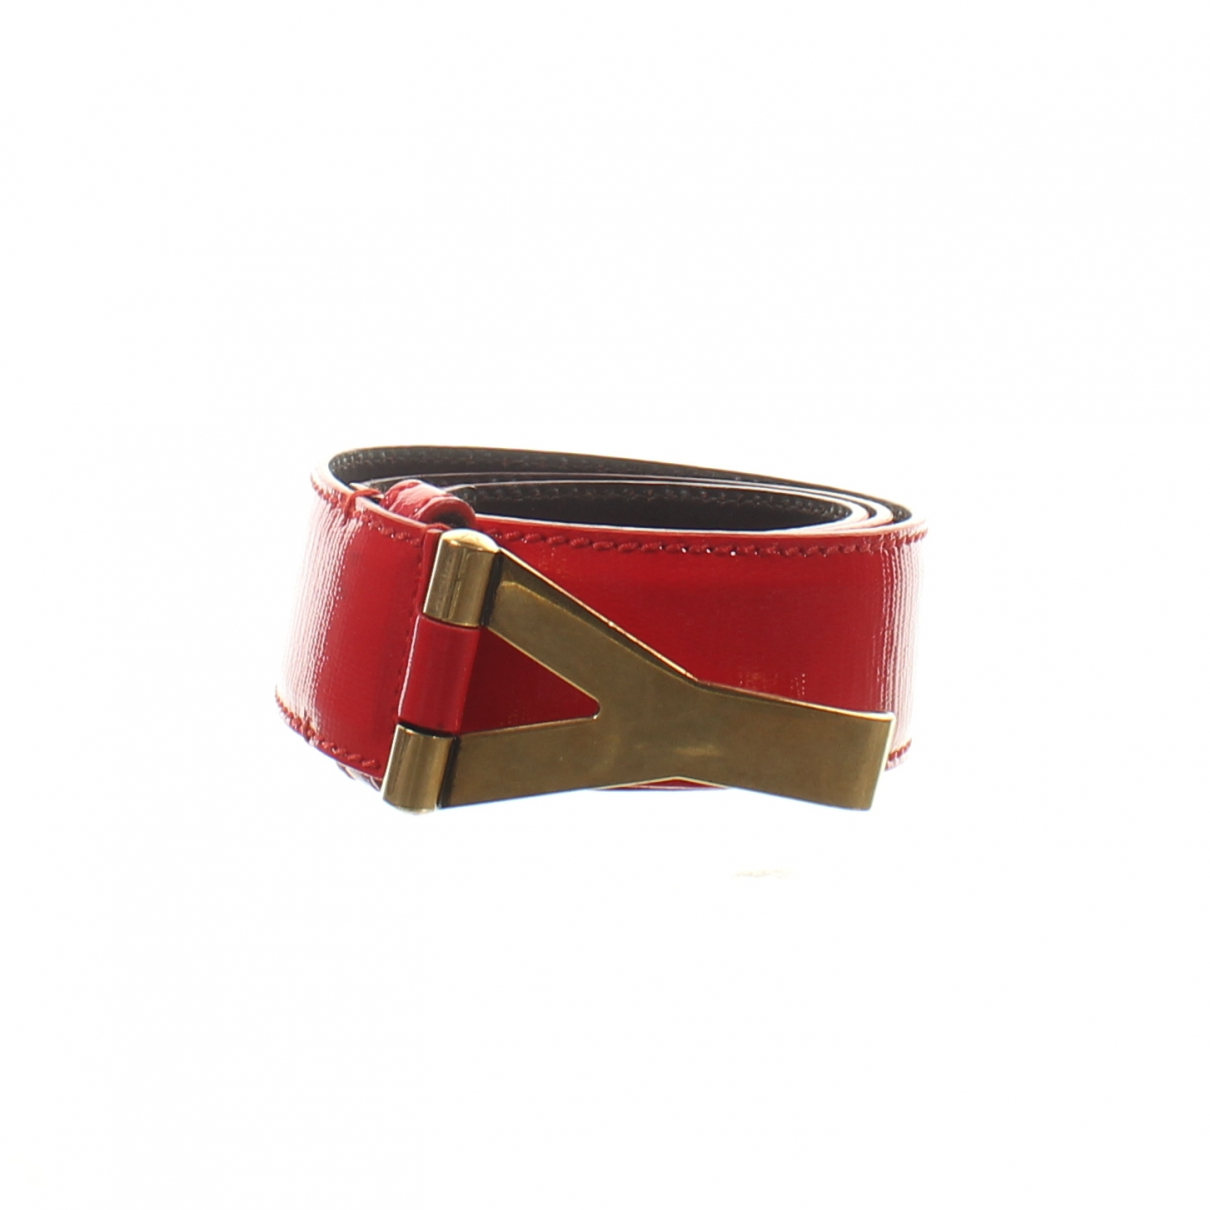 Yves Saint Laurent \N Red Patent leather belt for Women 70 cm